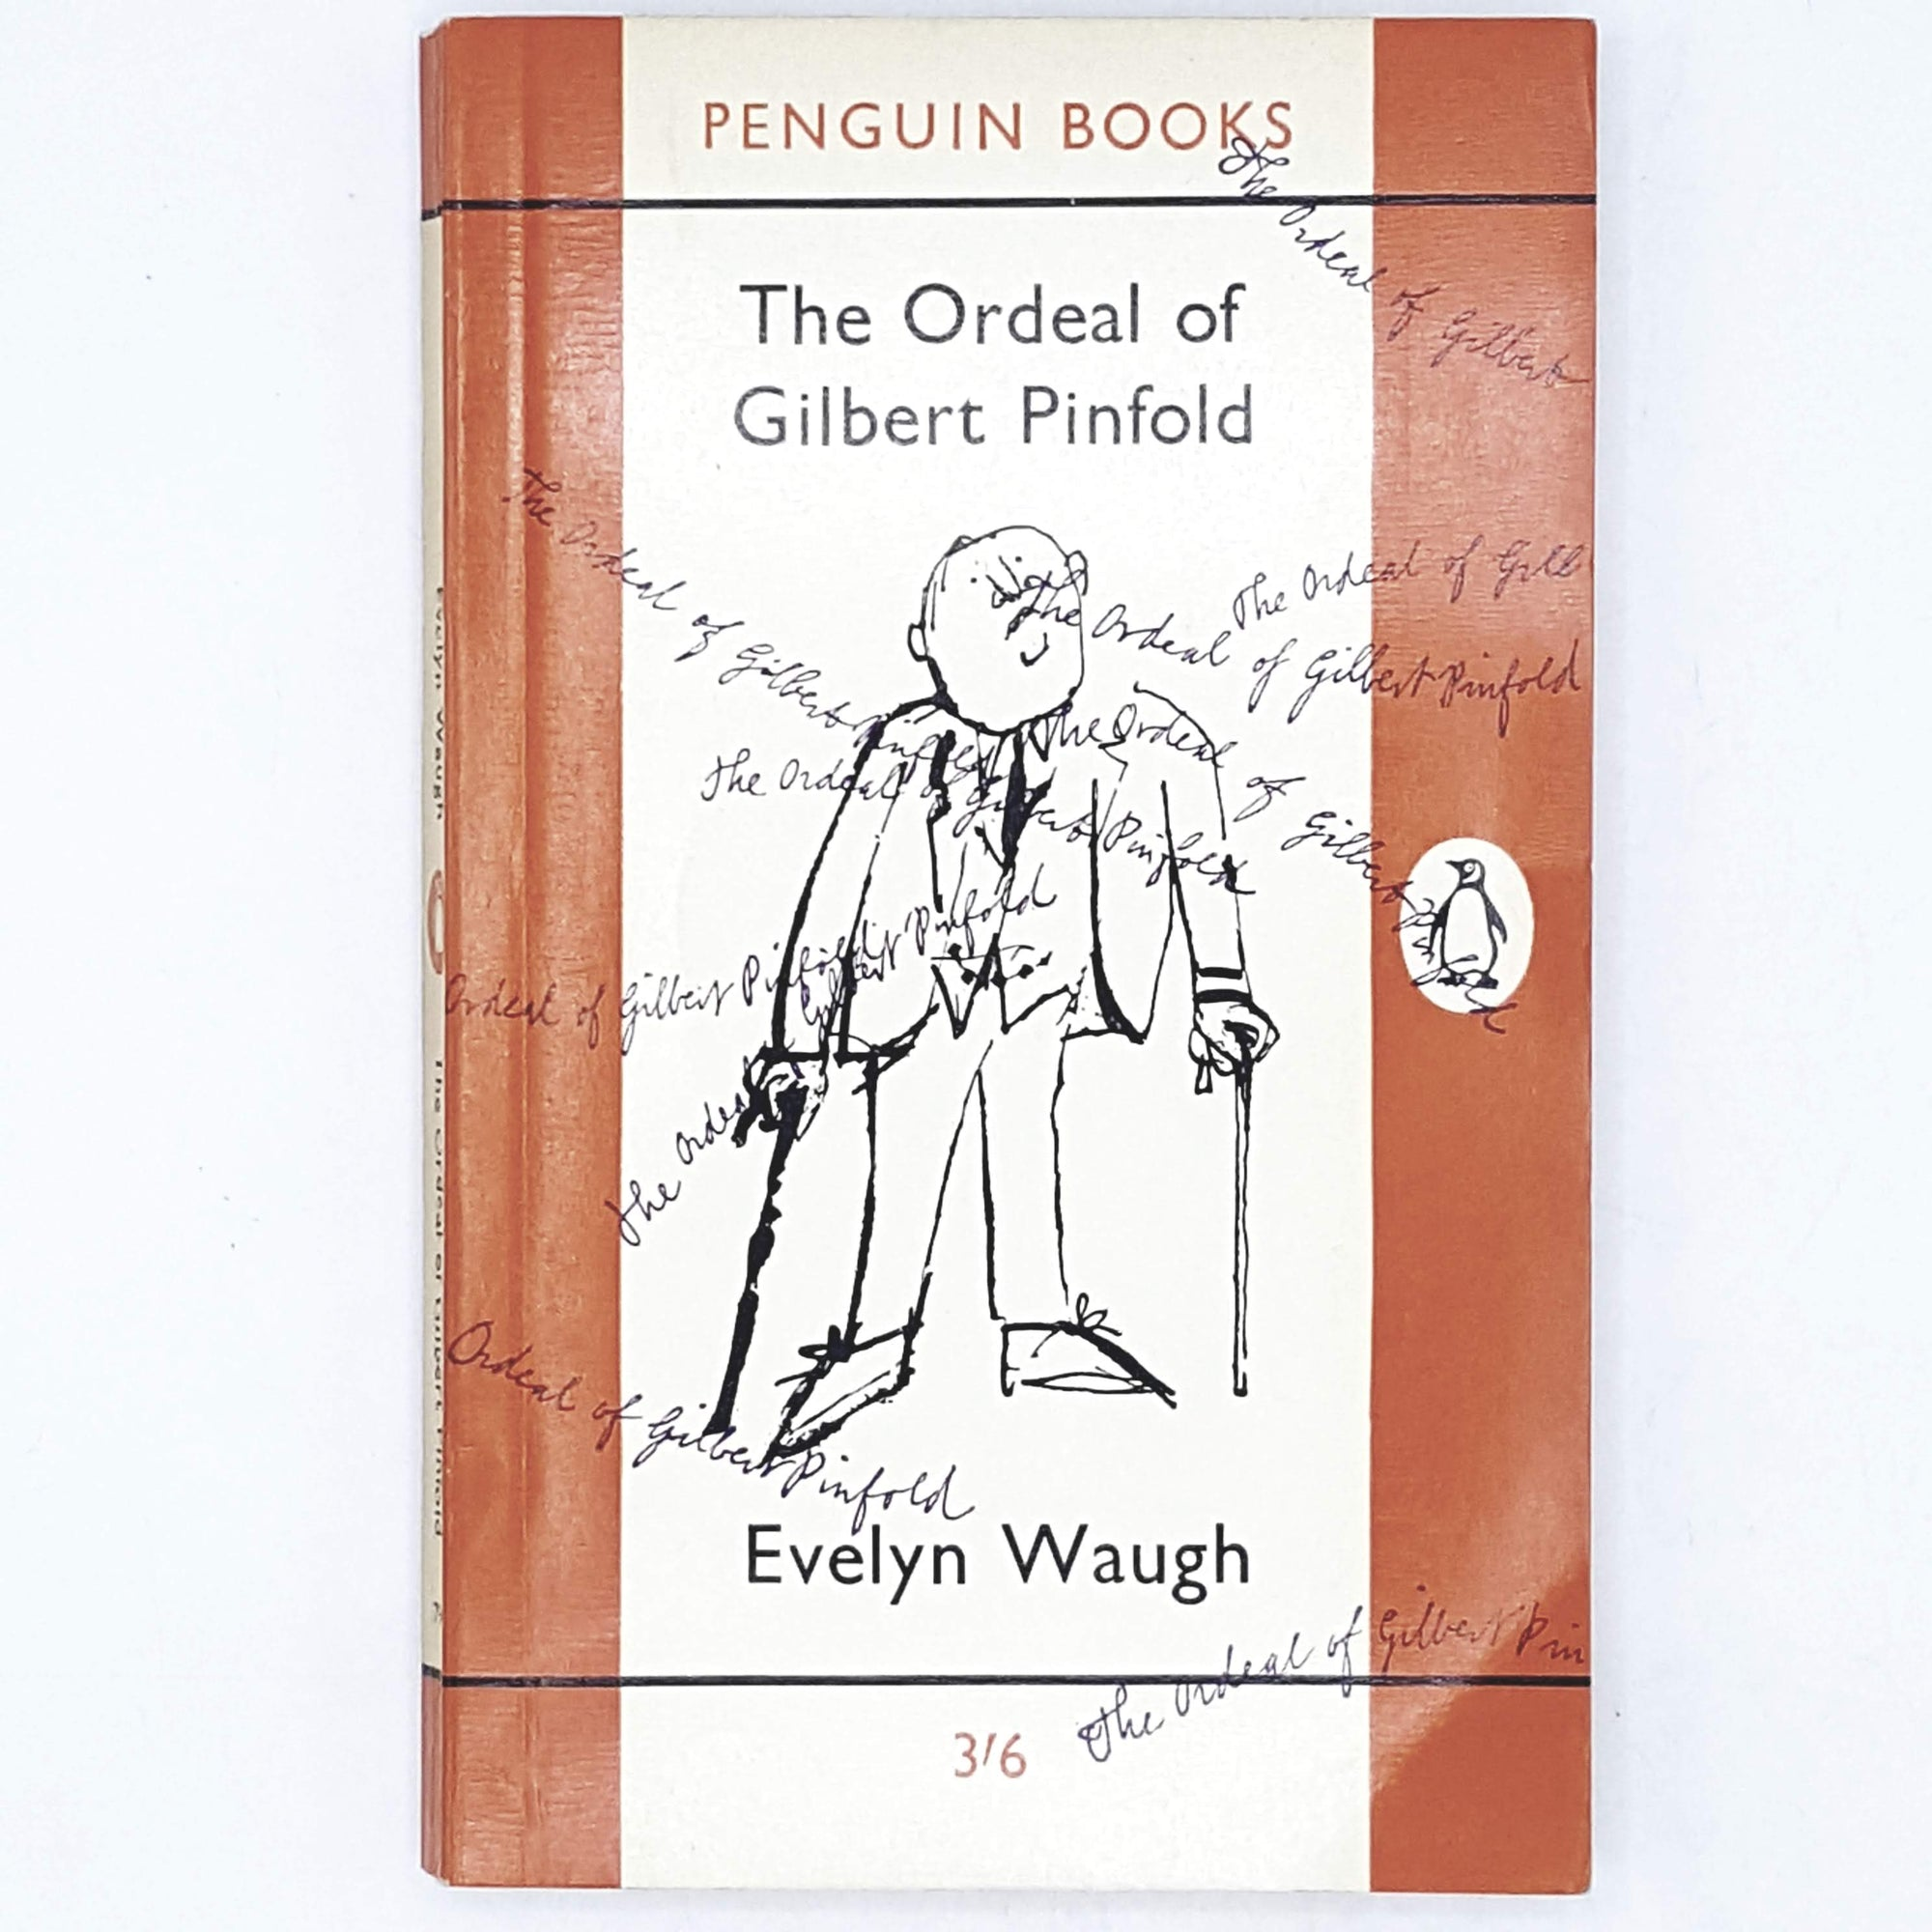 First Edition Evelyn Waugh's The Ordeal of Gilbert Pinfold 1962